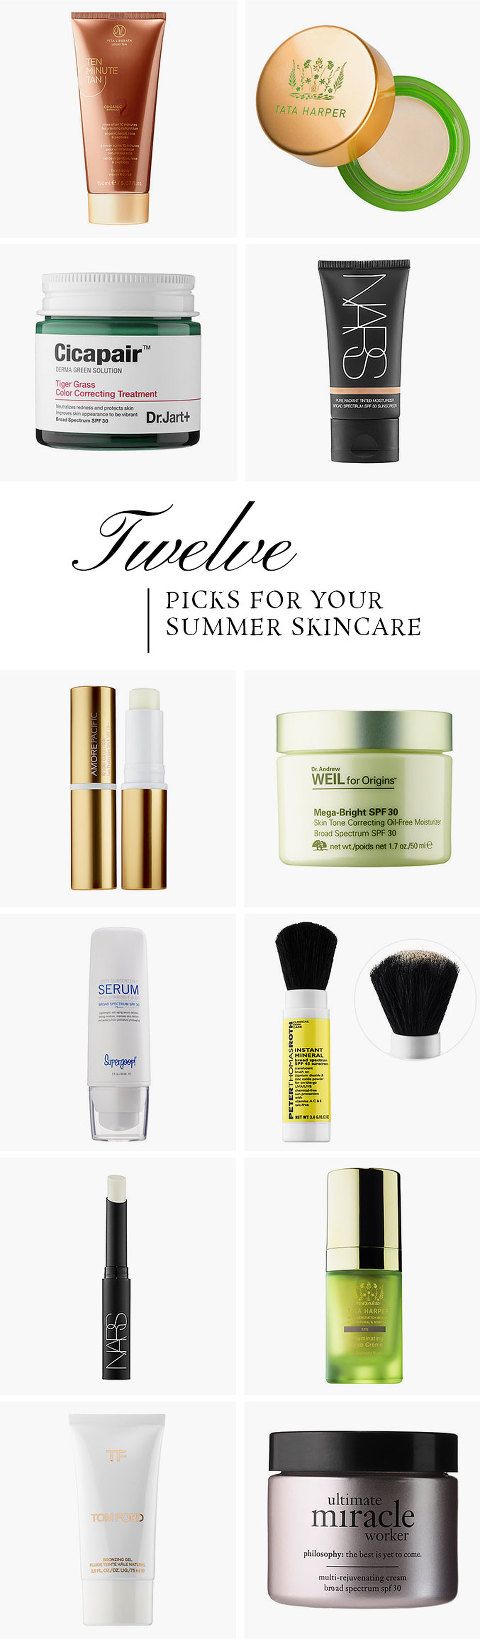 Everything You Need For Your Summer Skincare Collection | dreamgreendiy.com